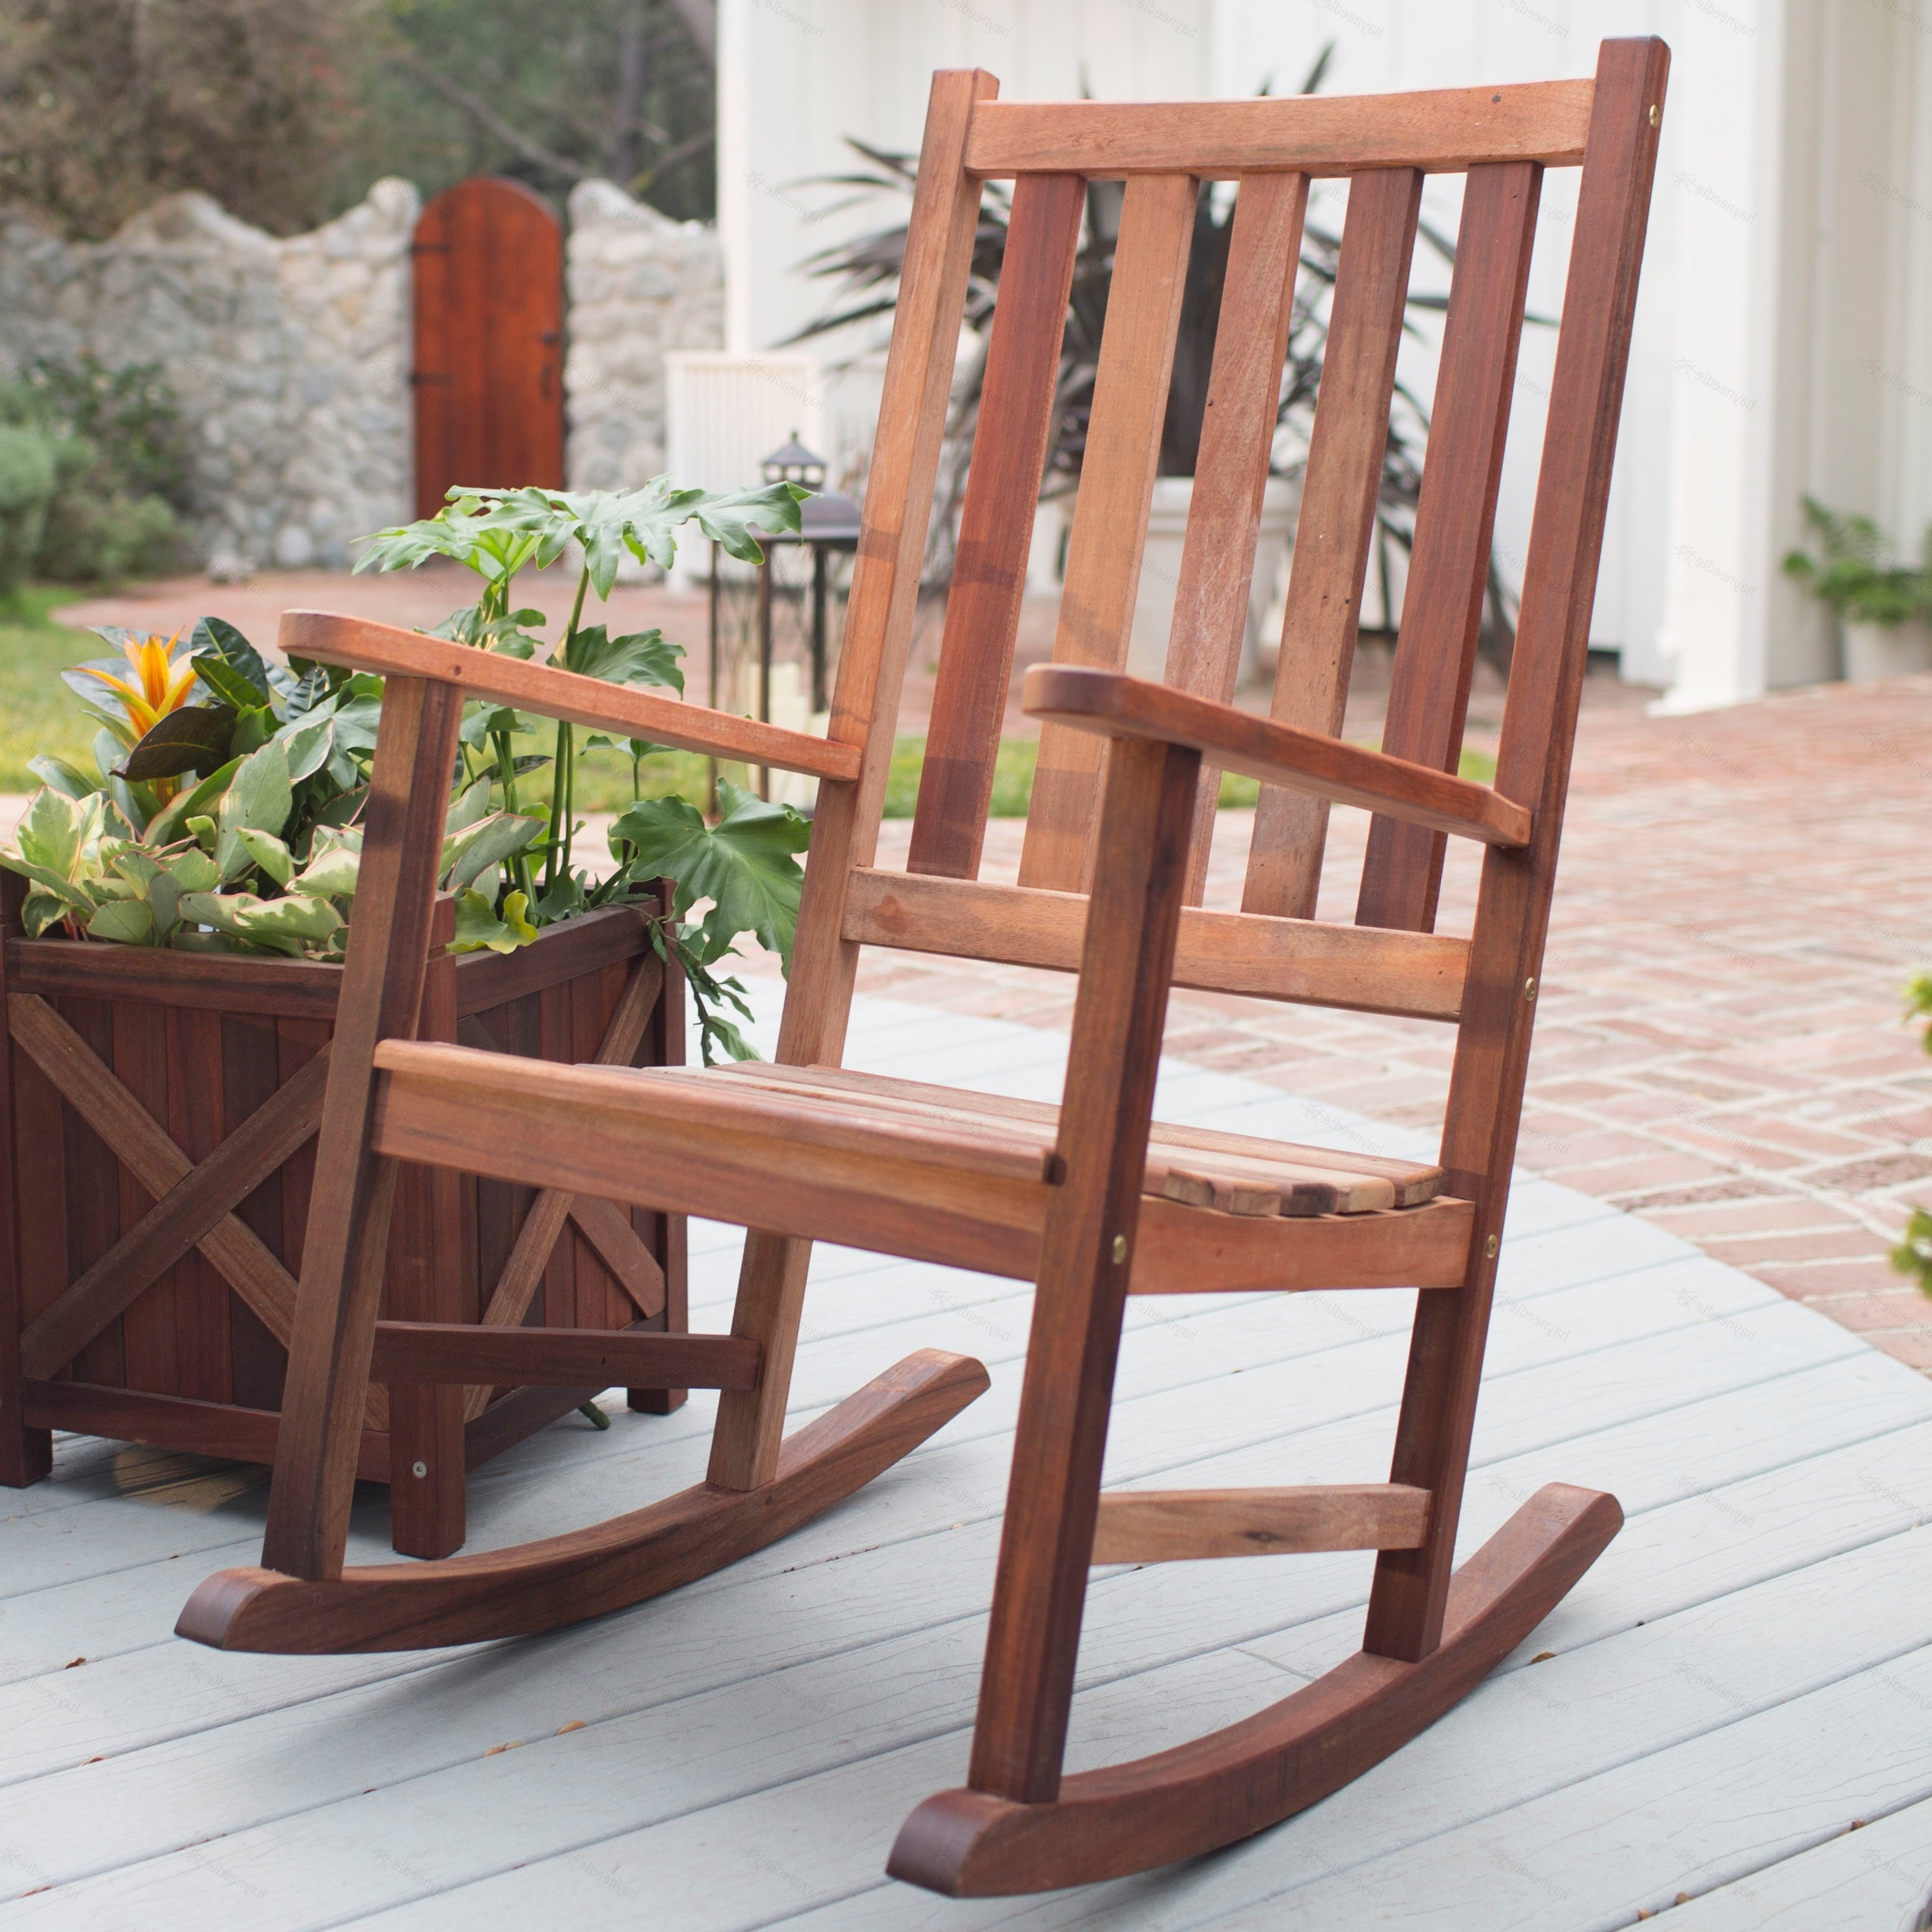 Well Known Outdoor Vinyl Rocking Chairs In Patio & Garden : Rocking Chairs For Outdoors Amazing Amazon Merry (View 20 of 20)